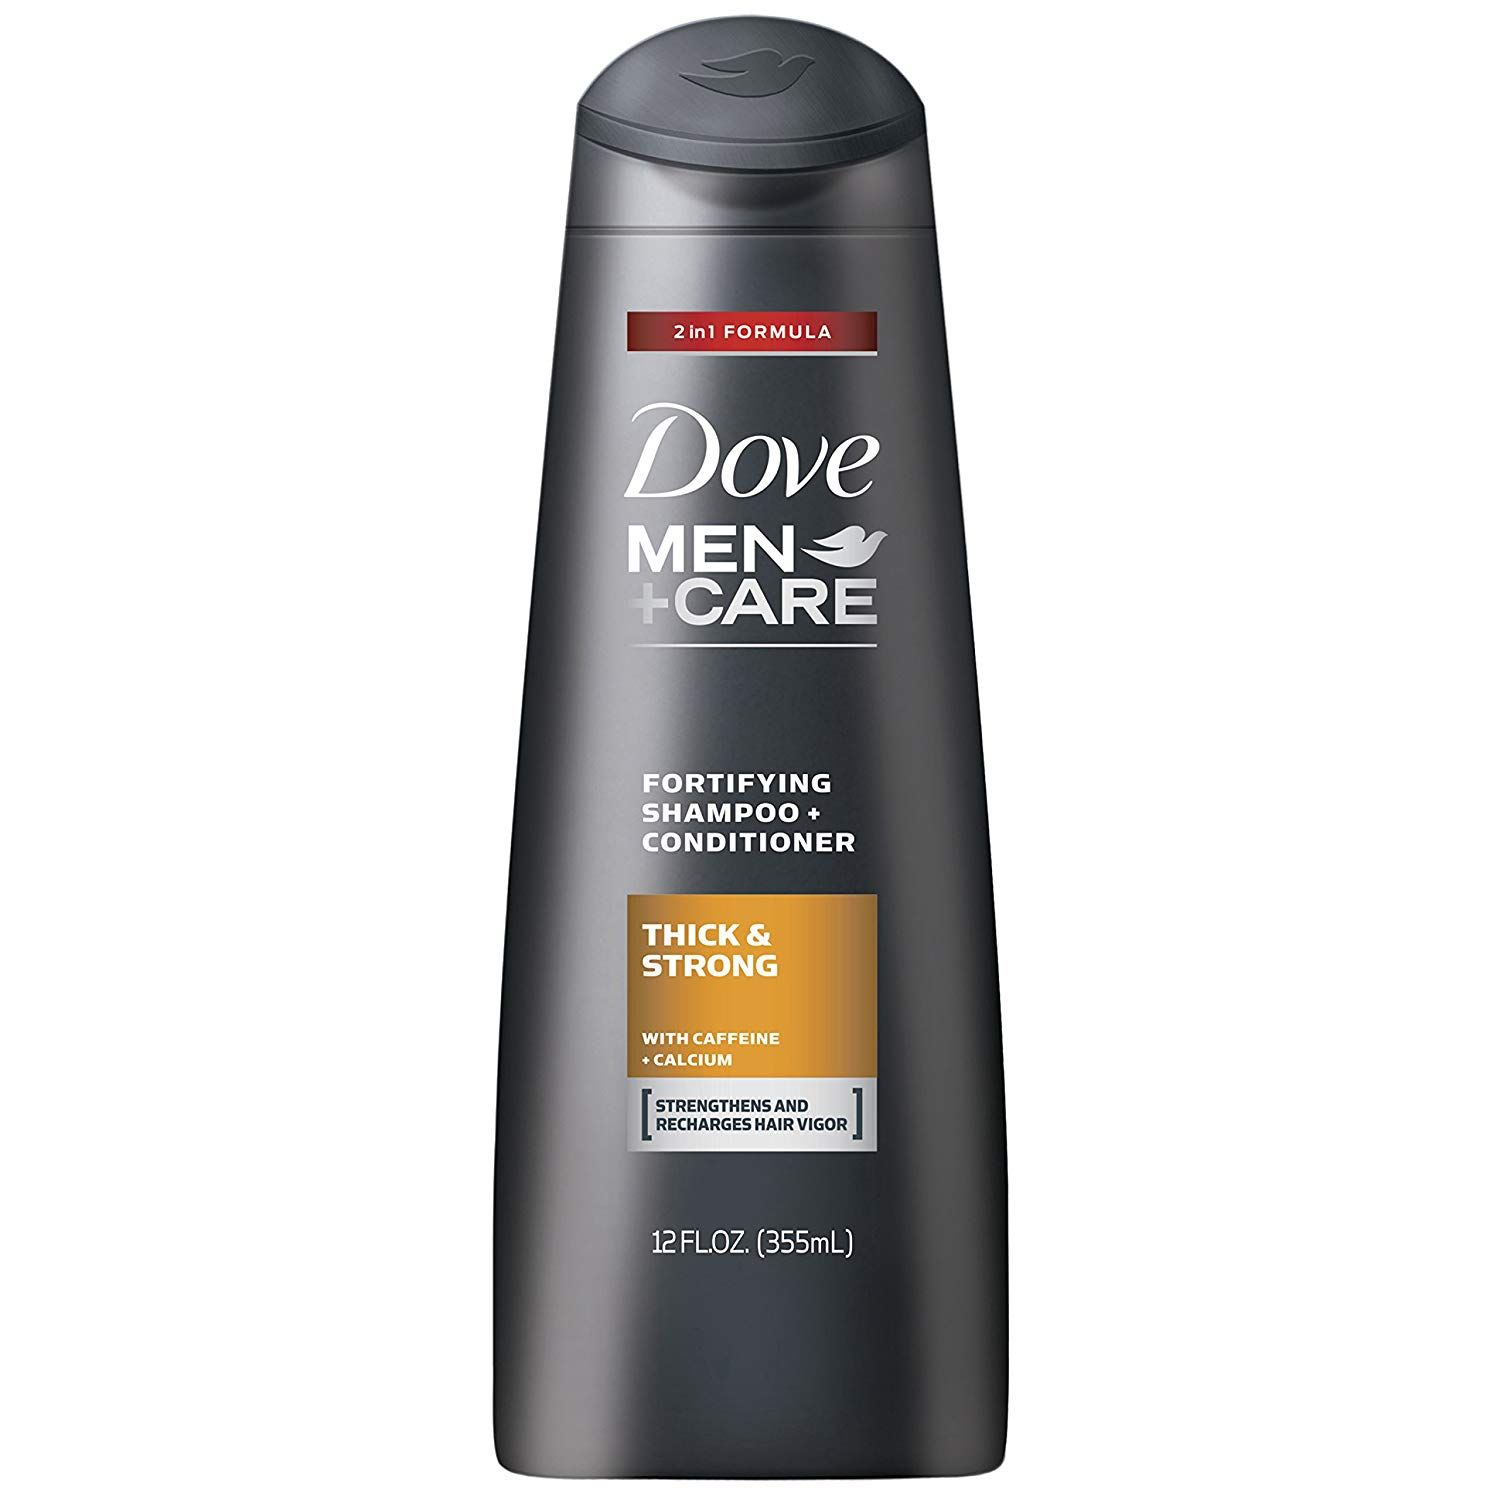 Fortifying Shampoo + Conditioner